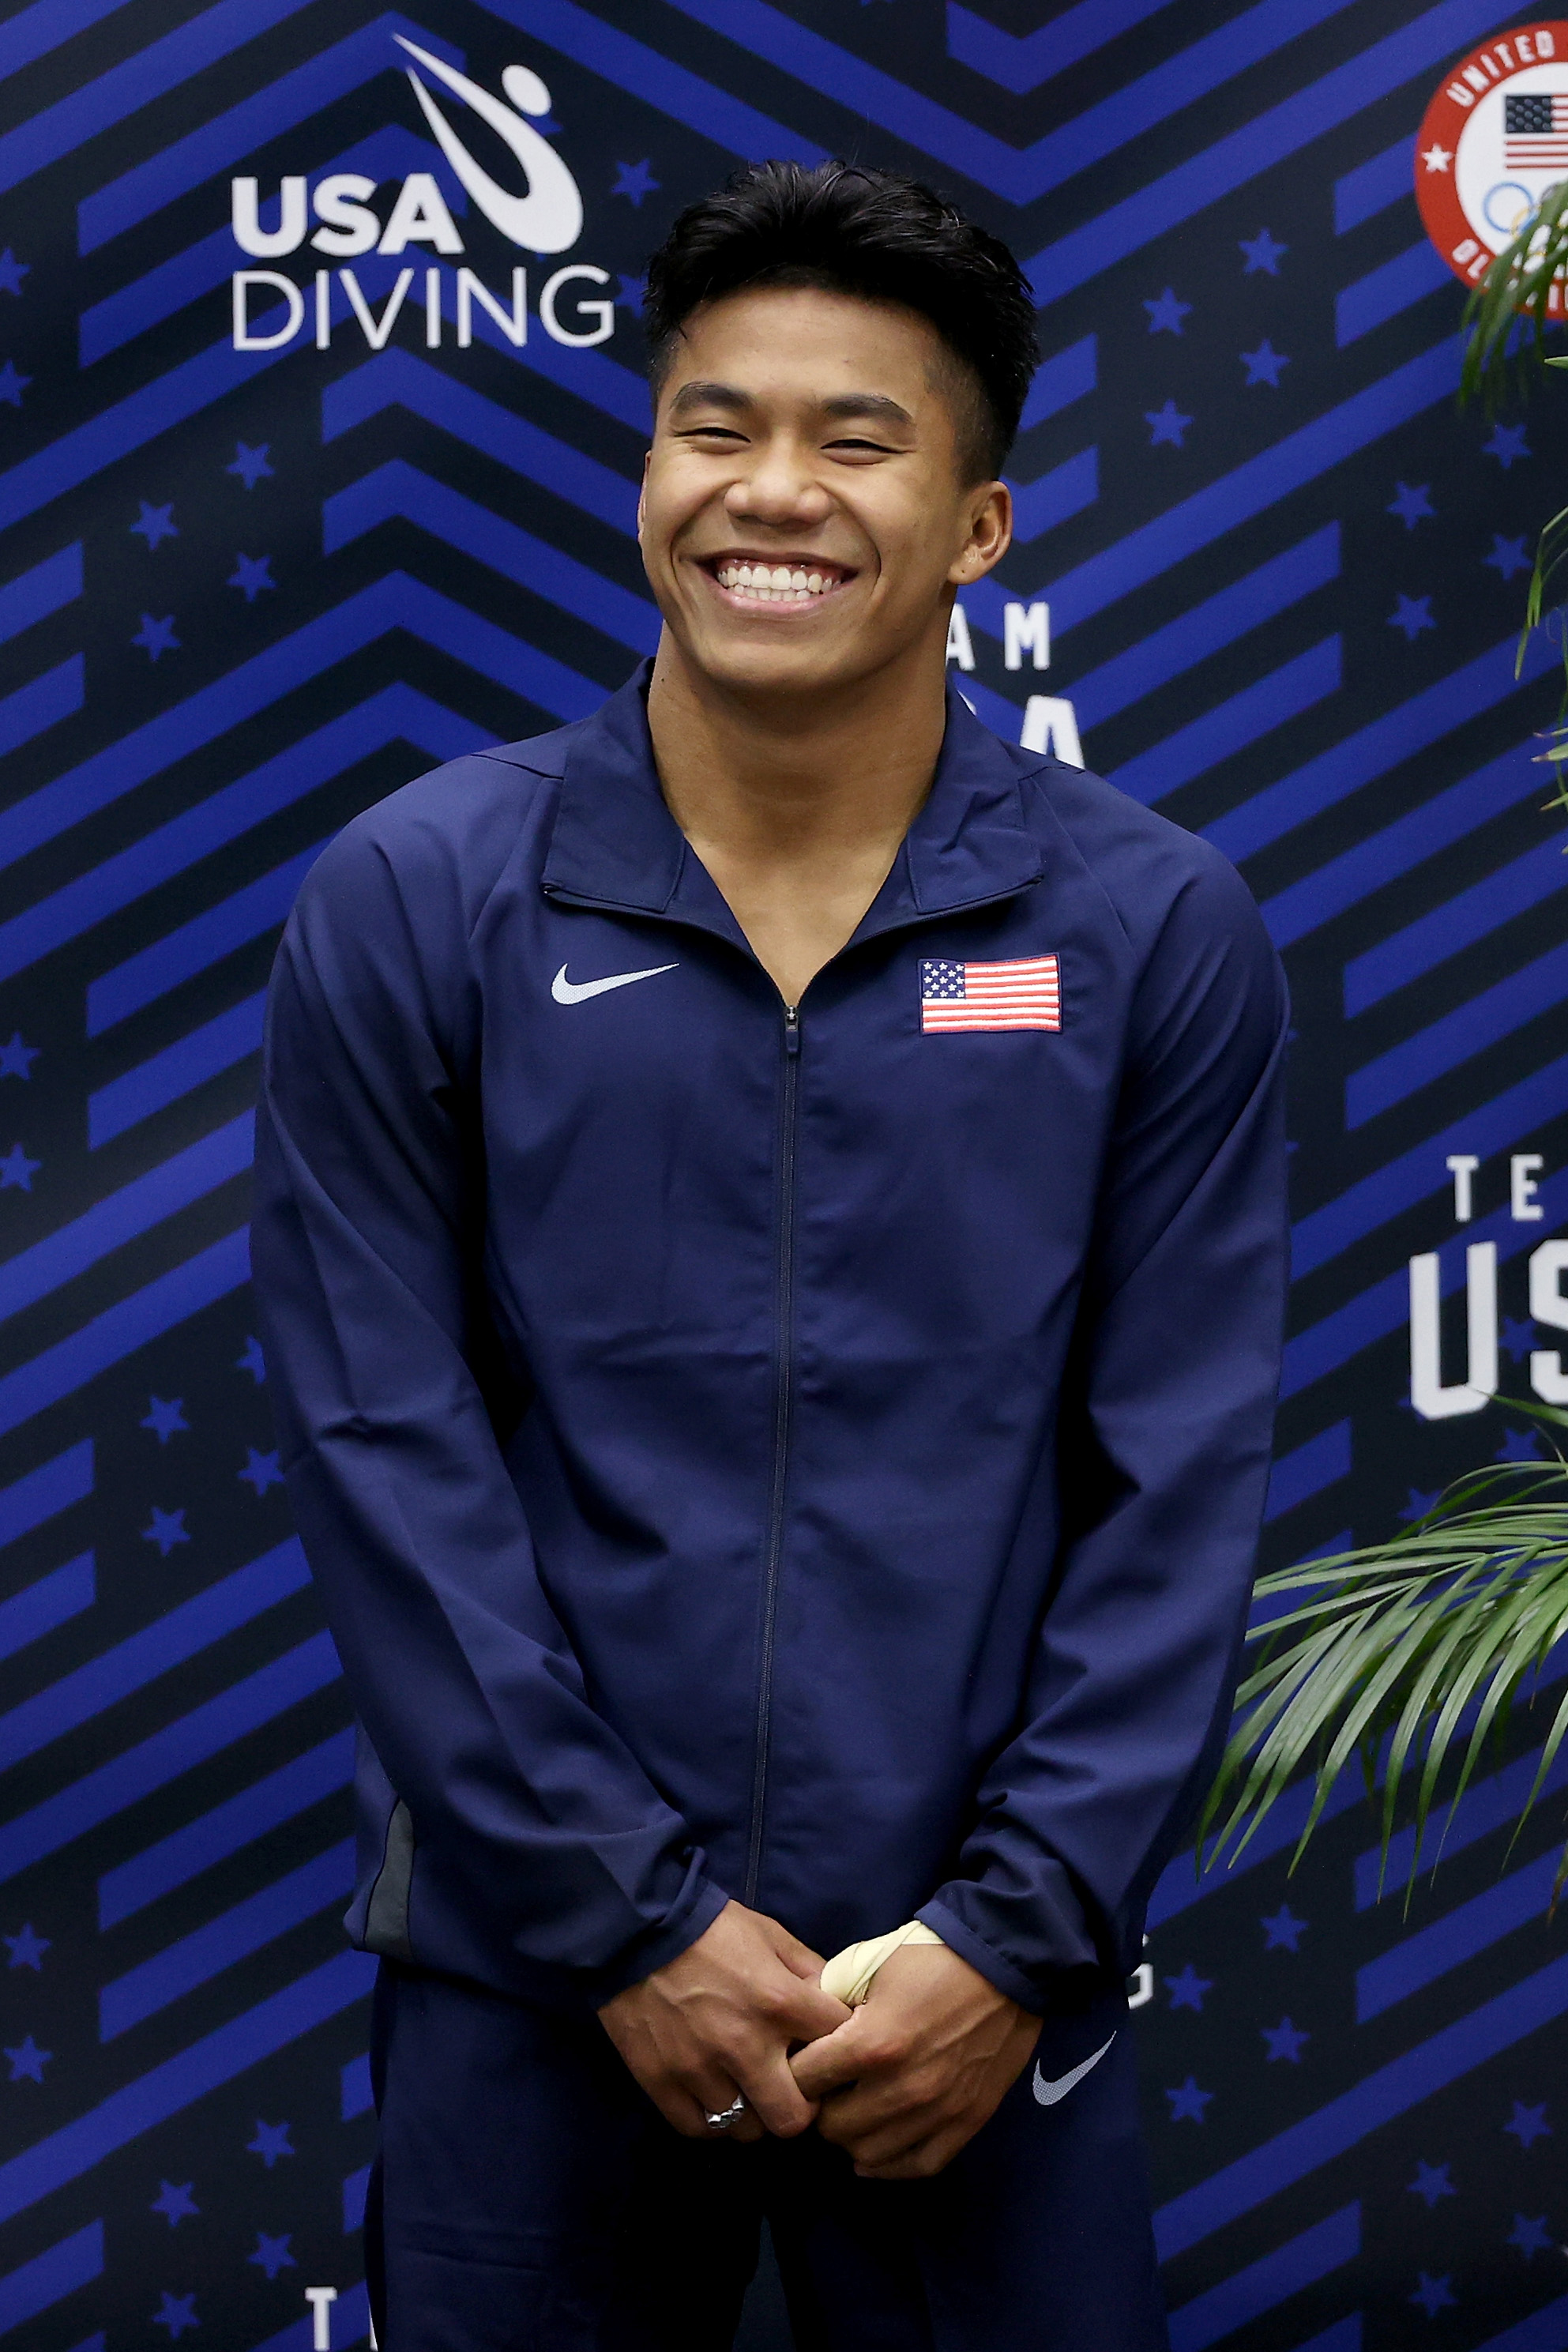 U.S. diver adopted from Cambodia and raised by a gay dad hopes to inspire others